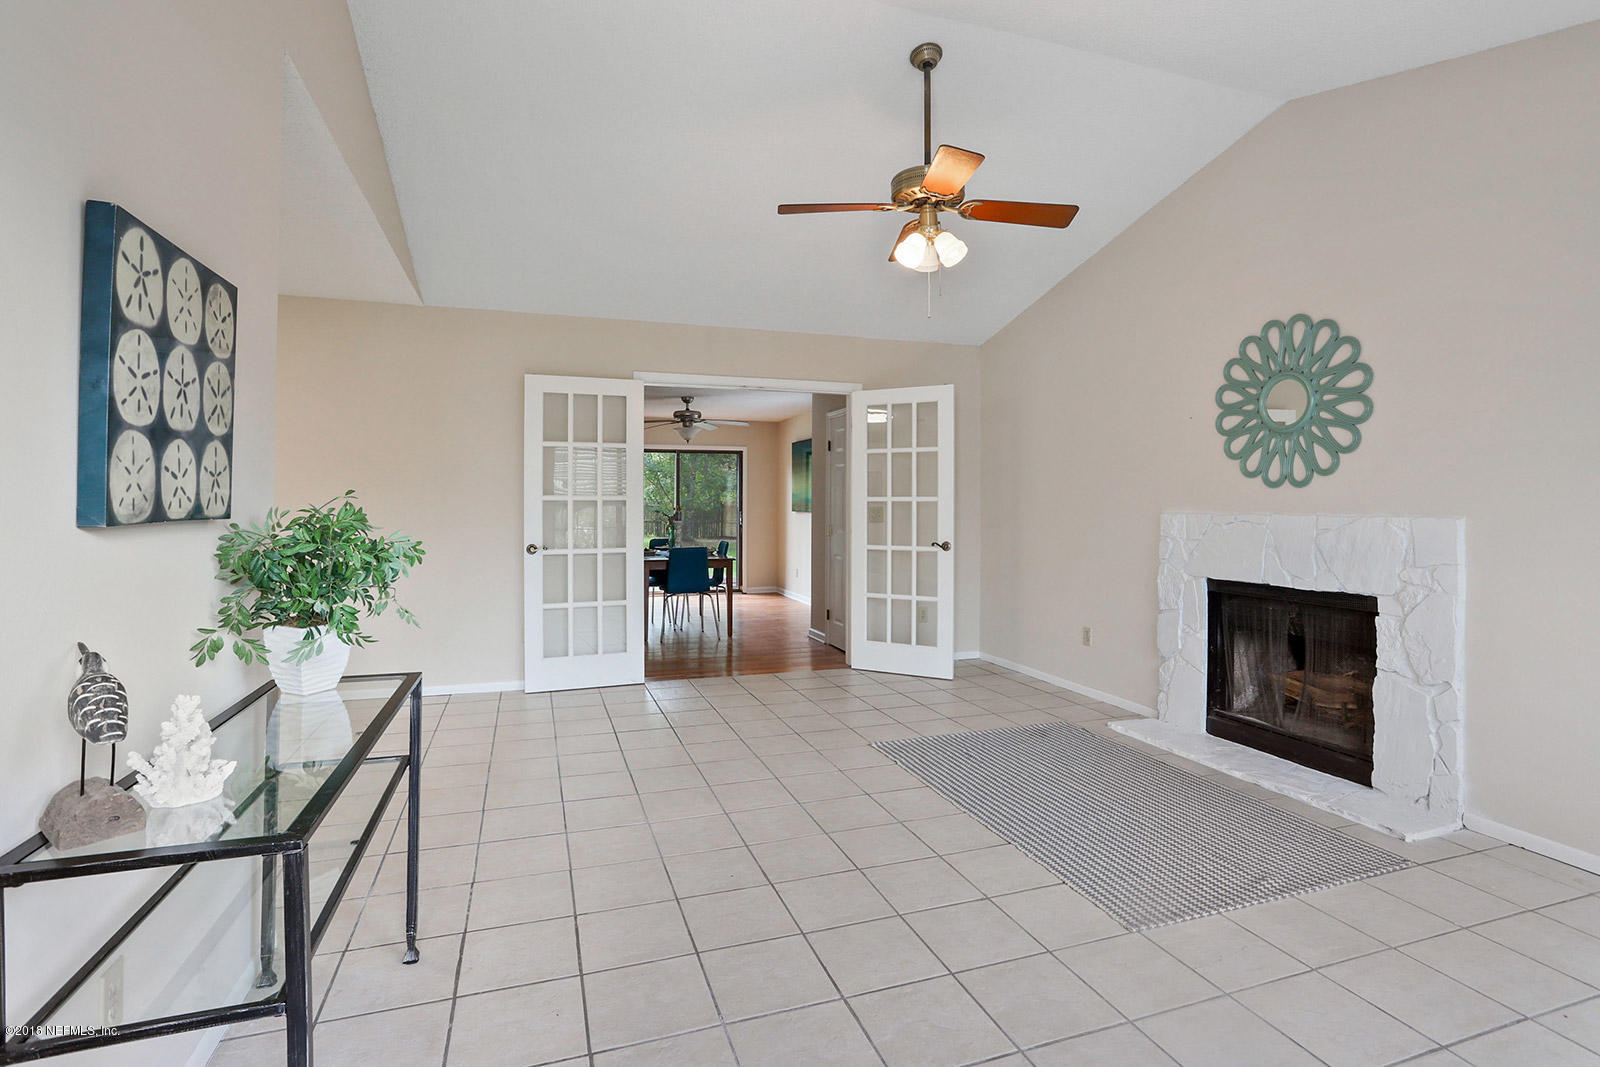 8044 COLONNADE, JACKSONVILLE, FLORIDA 32244, 3 Bedrooms Bedrooms, ,1 BathroomBathrooms,Residential - single family,For sale,COLONNADE,951810